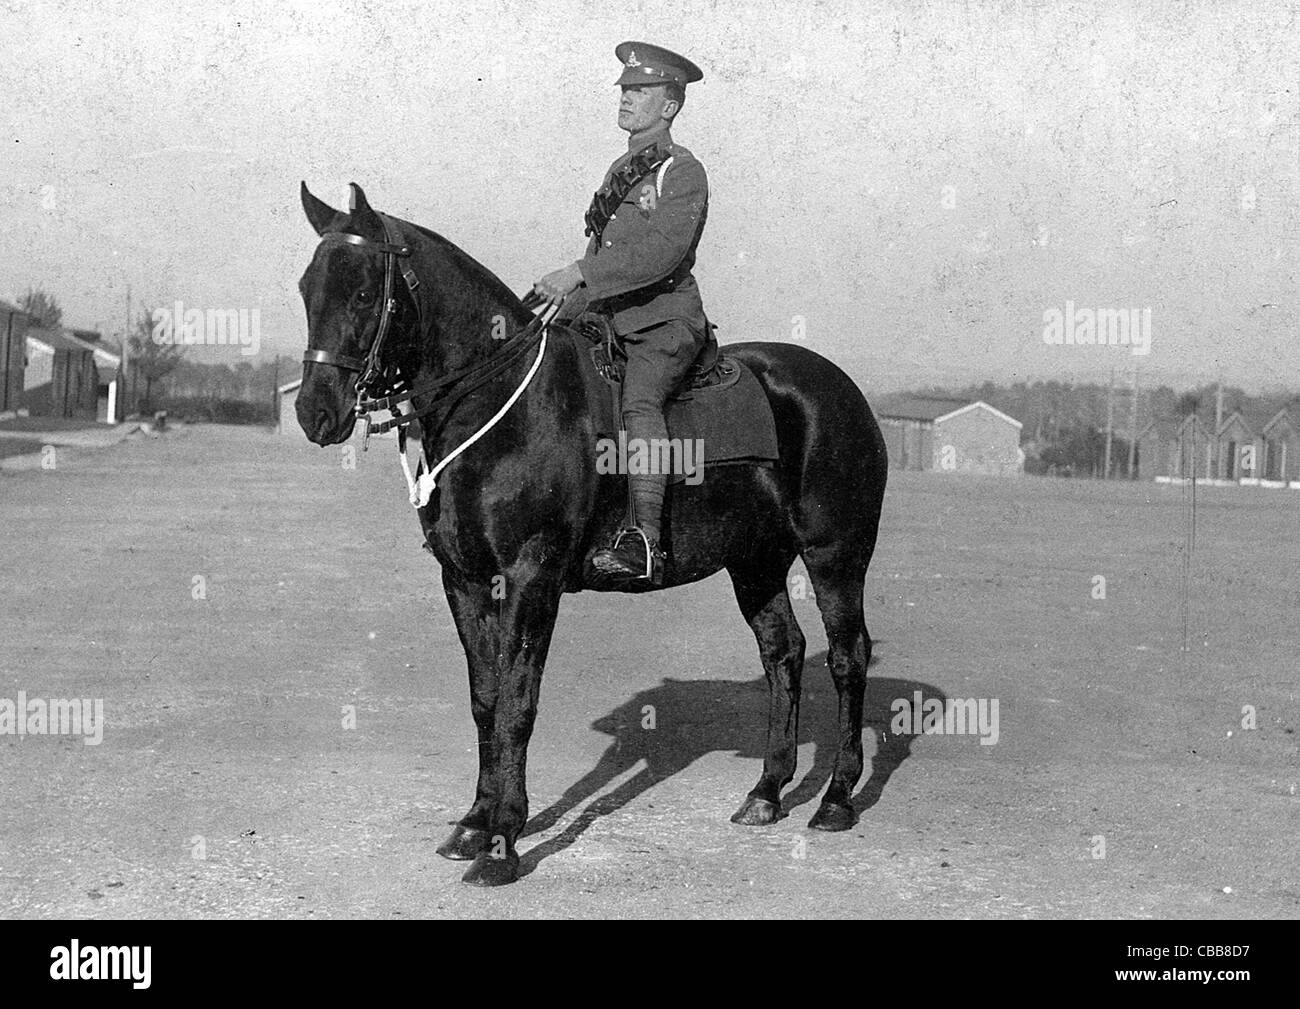 A ww1 mounted trooper - Stock Image